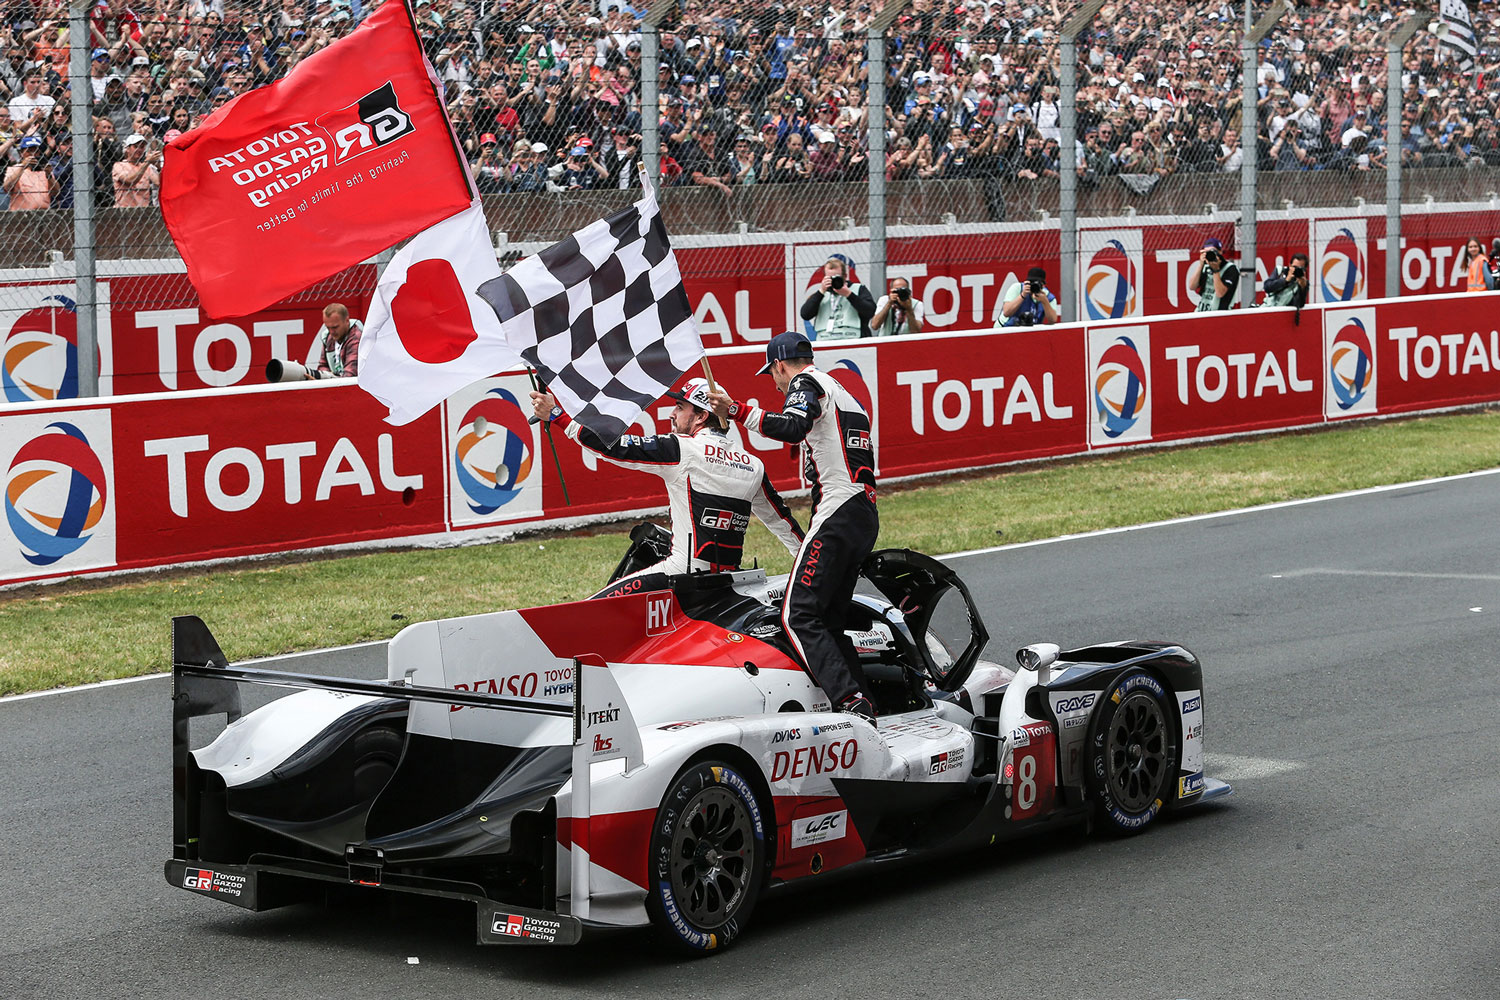 Toyota scores second consecutive Le Mans win